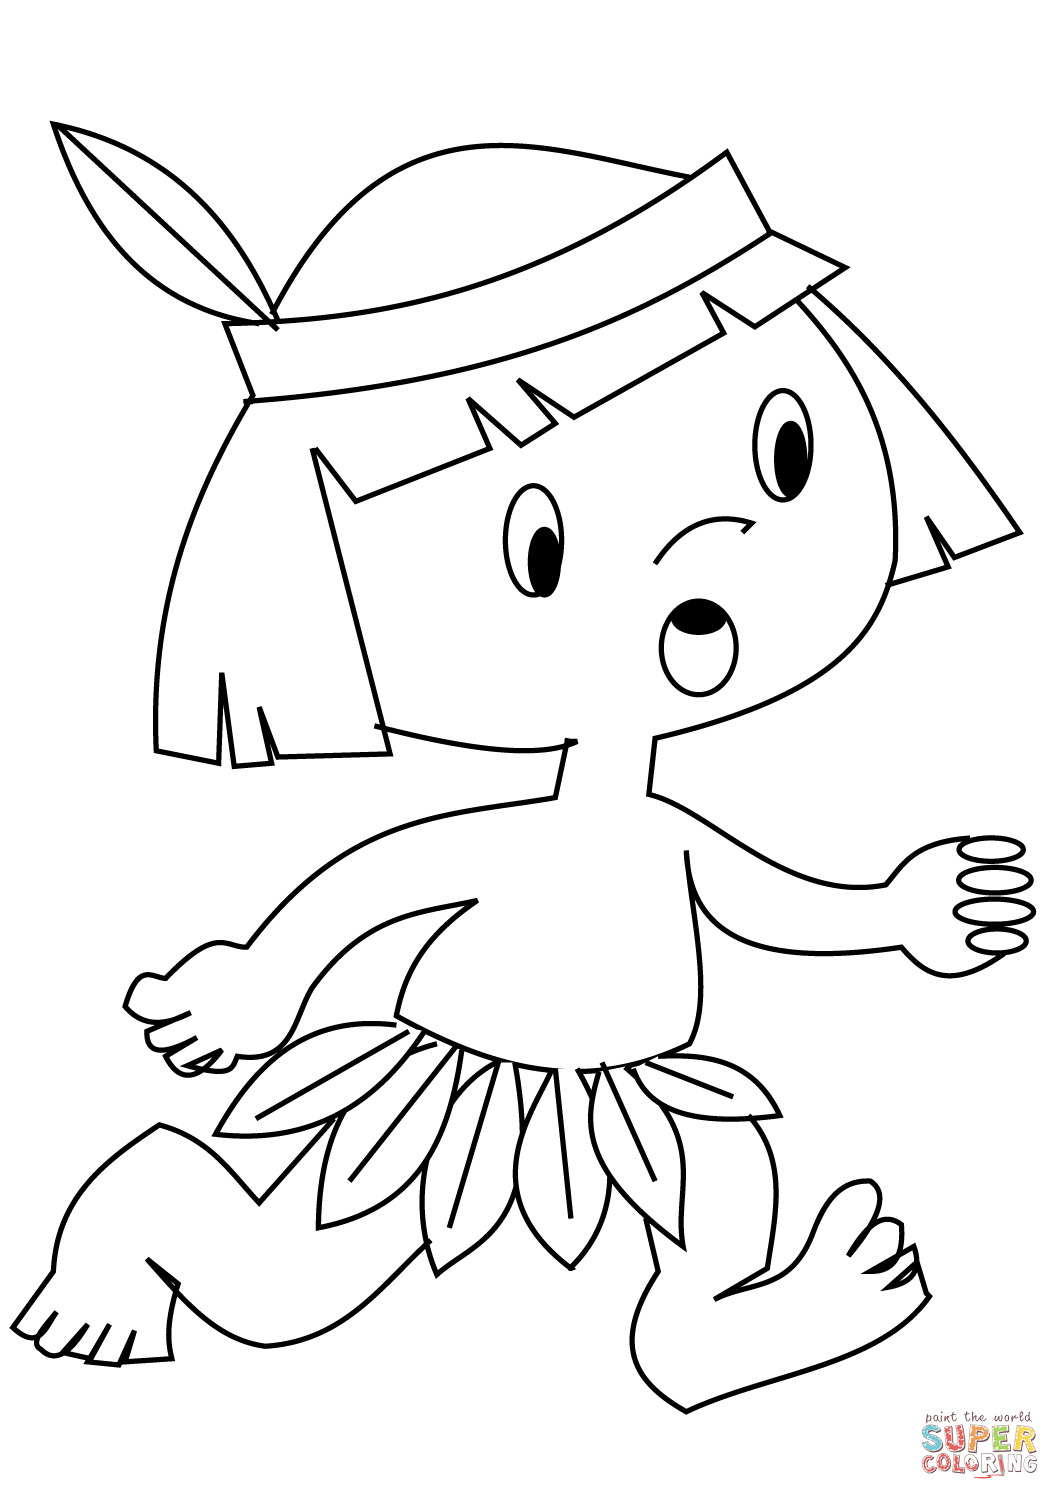 indian pictures to color native american indian coloring pages for kids pictures to color indian